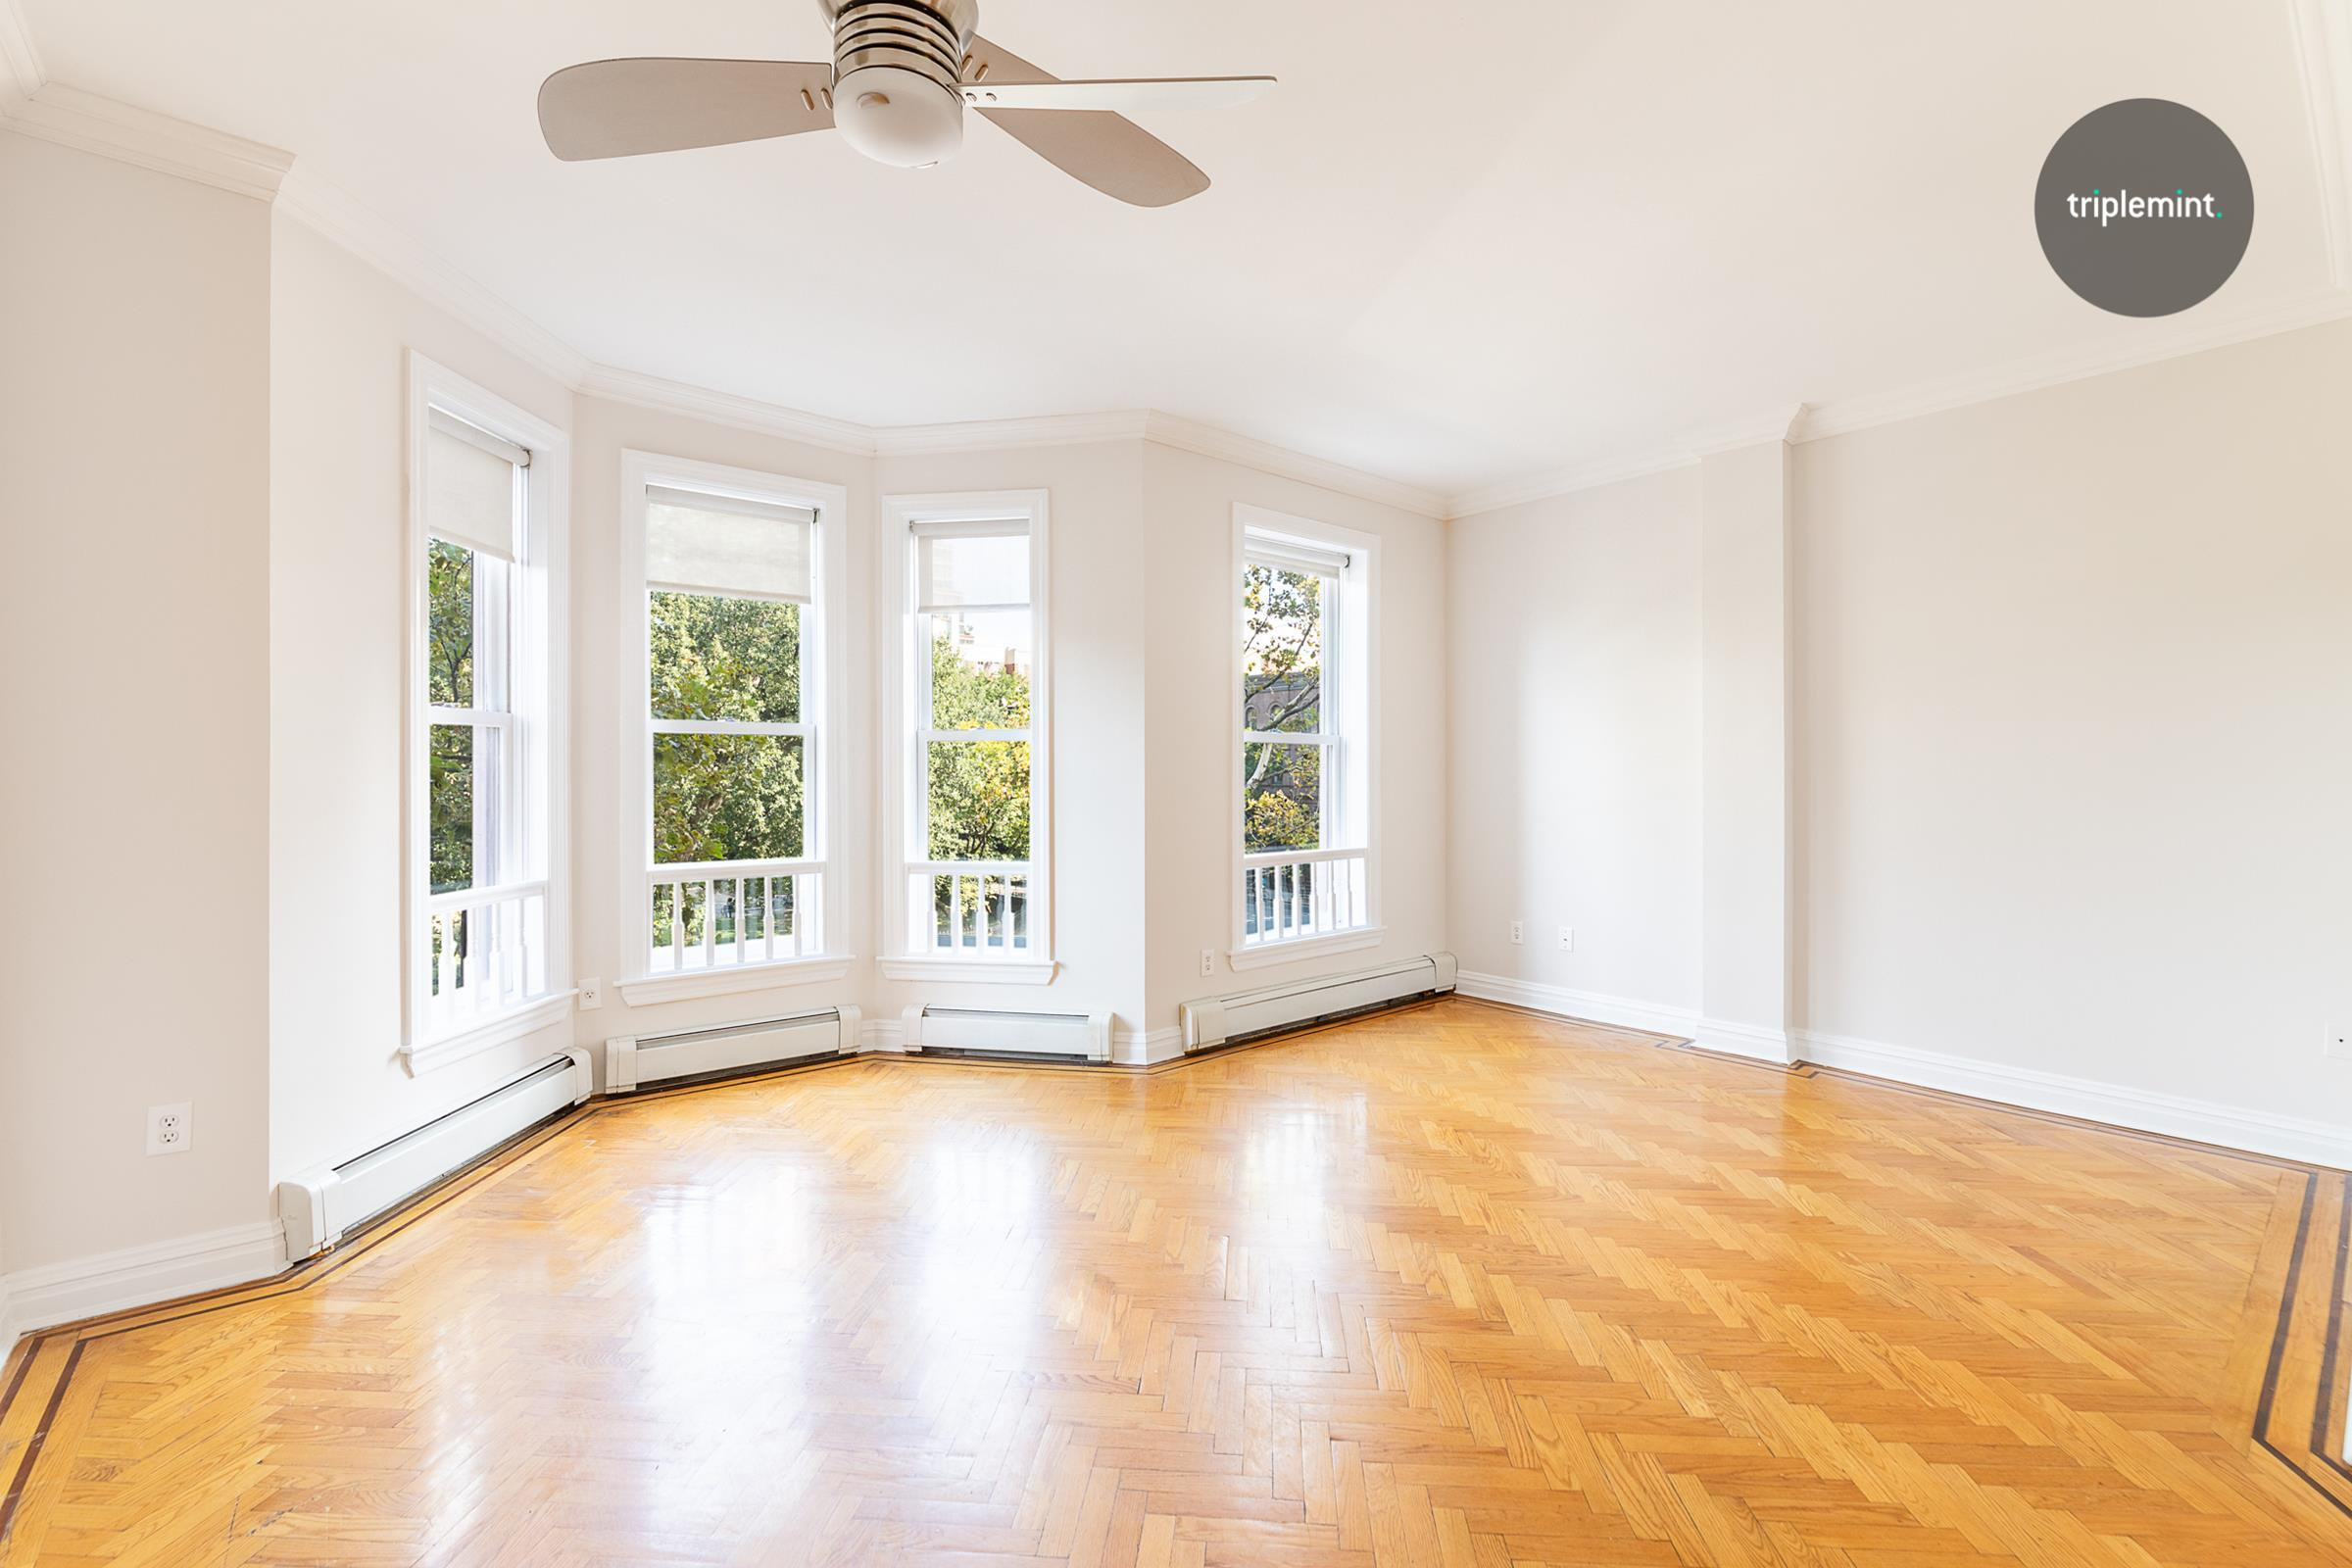 5 Mount Morris Park West, Apt C, Manhattan, New York 10027